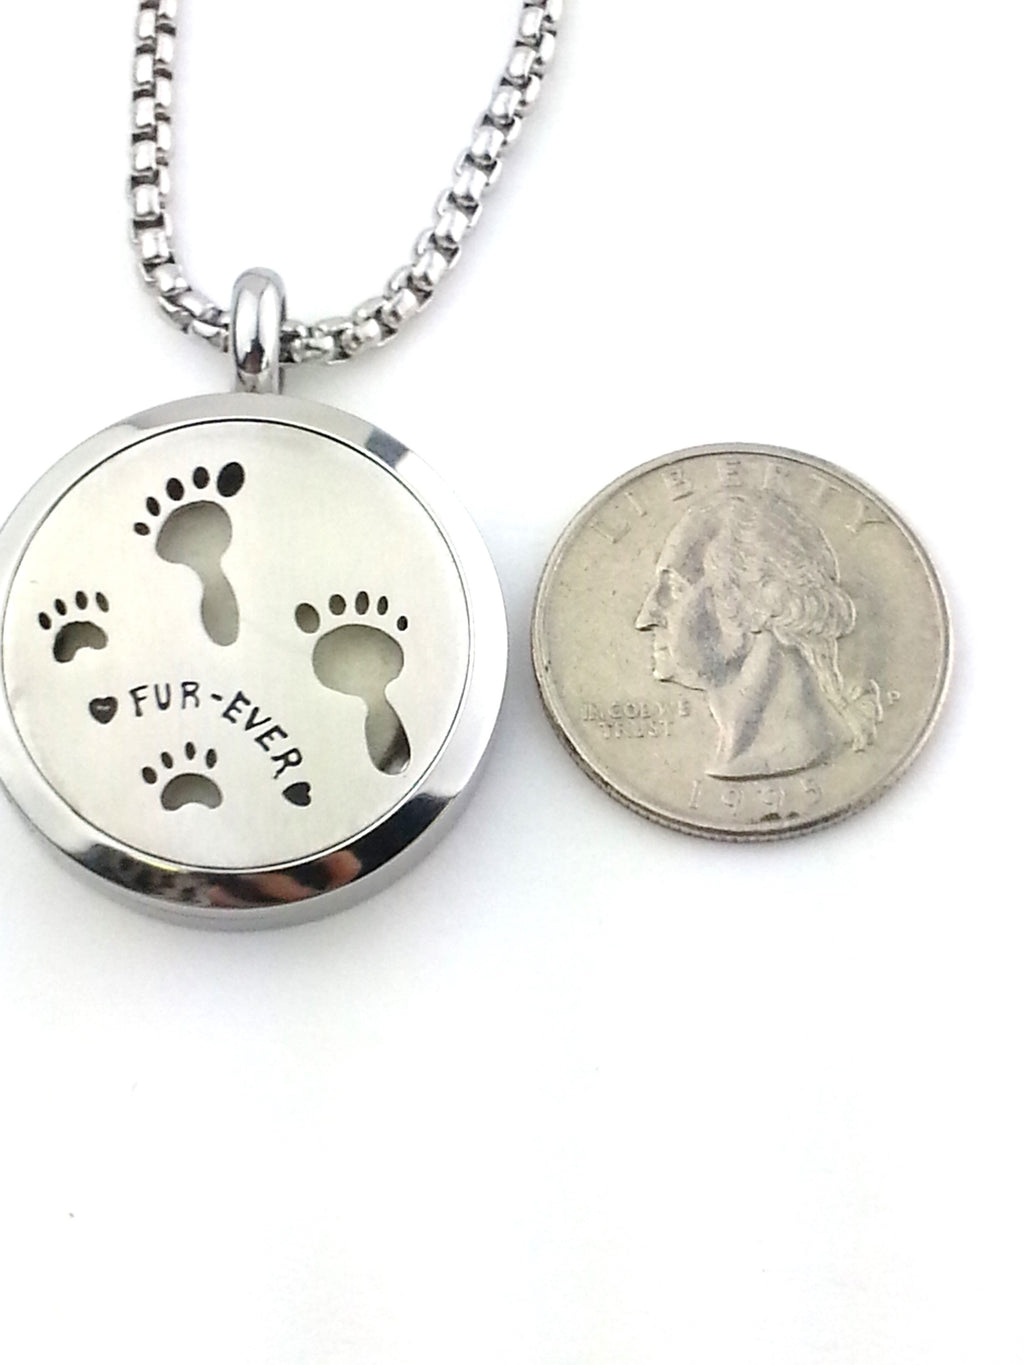 Essential oil diffuser necklace with Furever pawprints from Earth in Wire